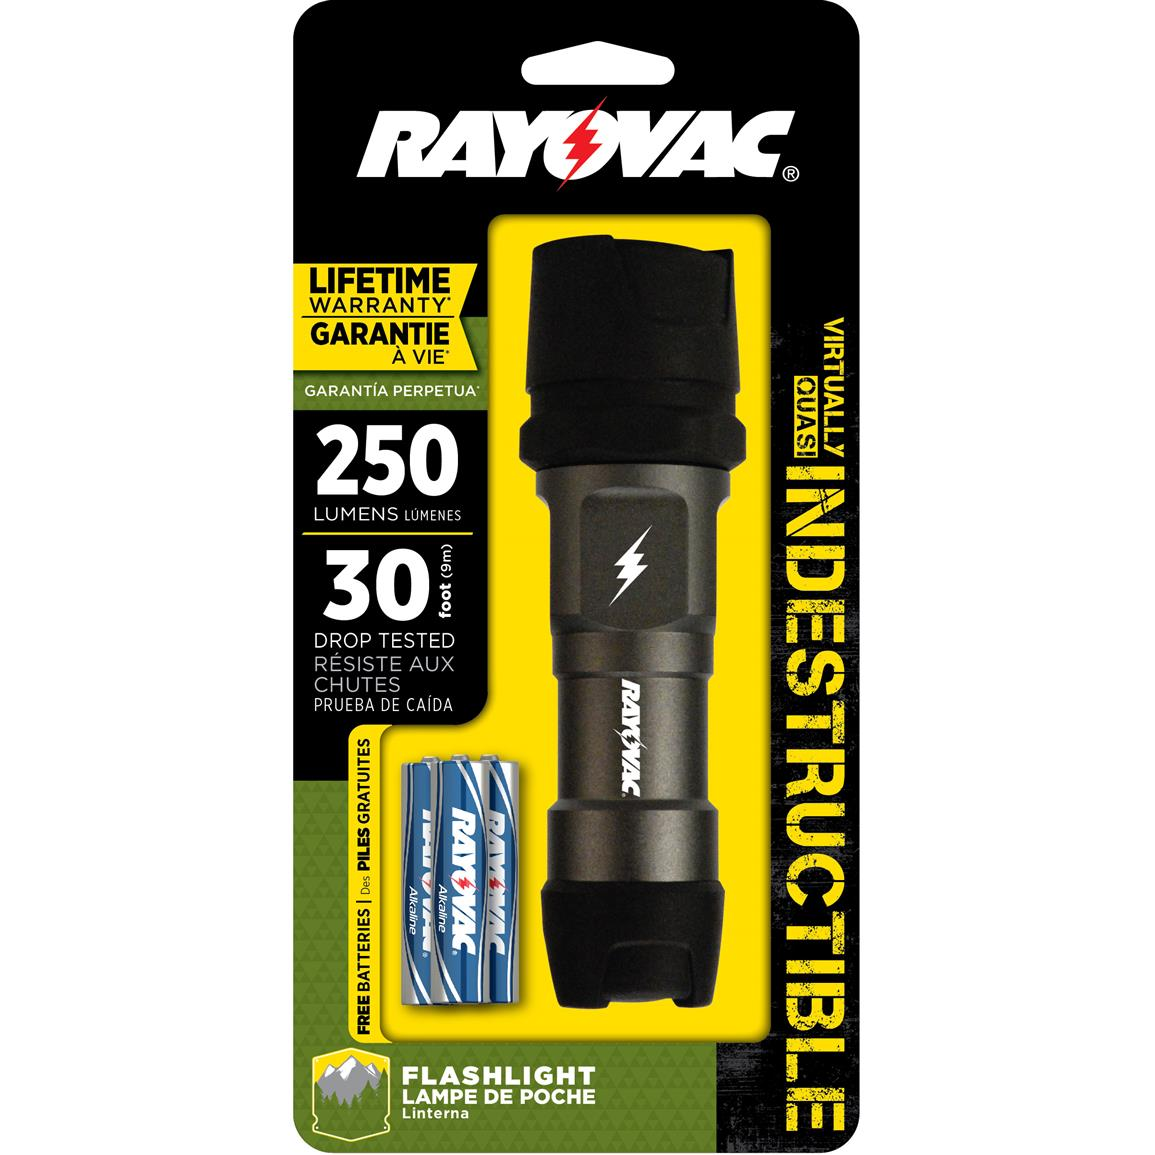 Rayovac Indestructible 250 Lumen LED Flashlight